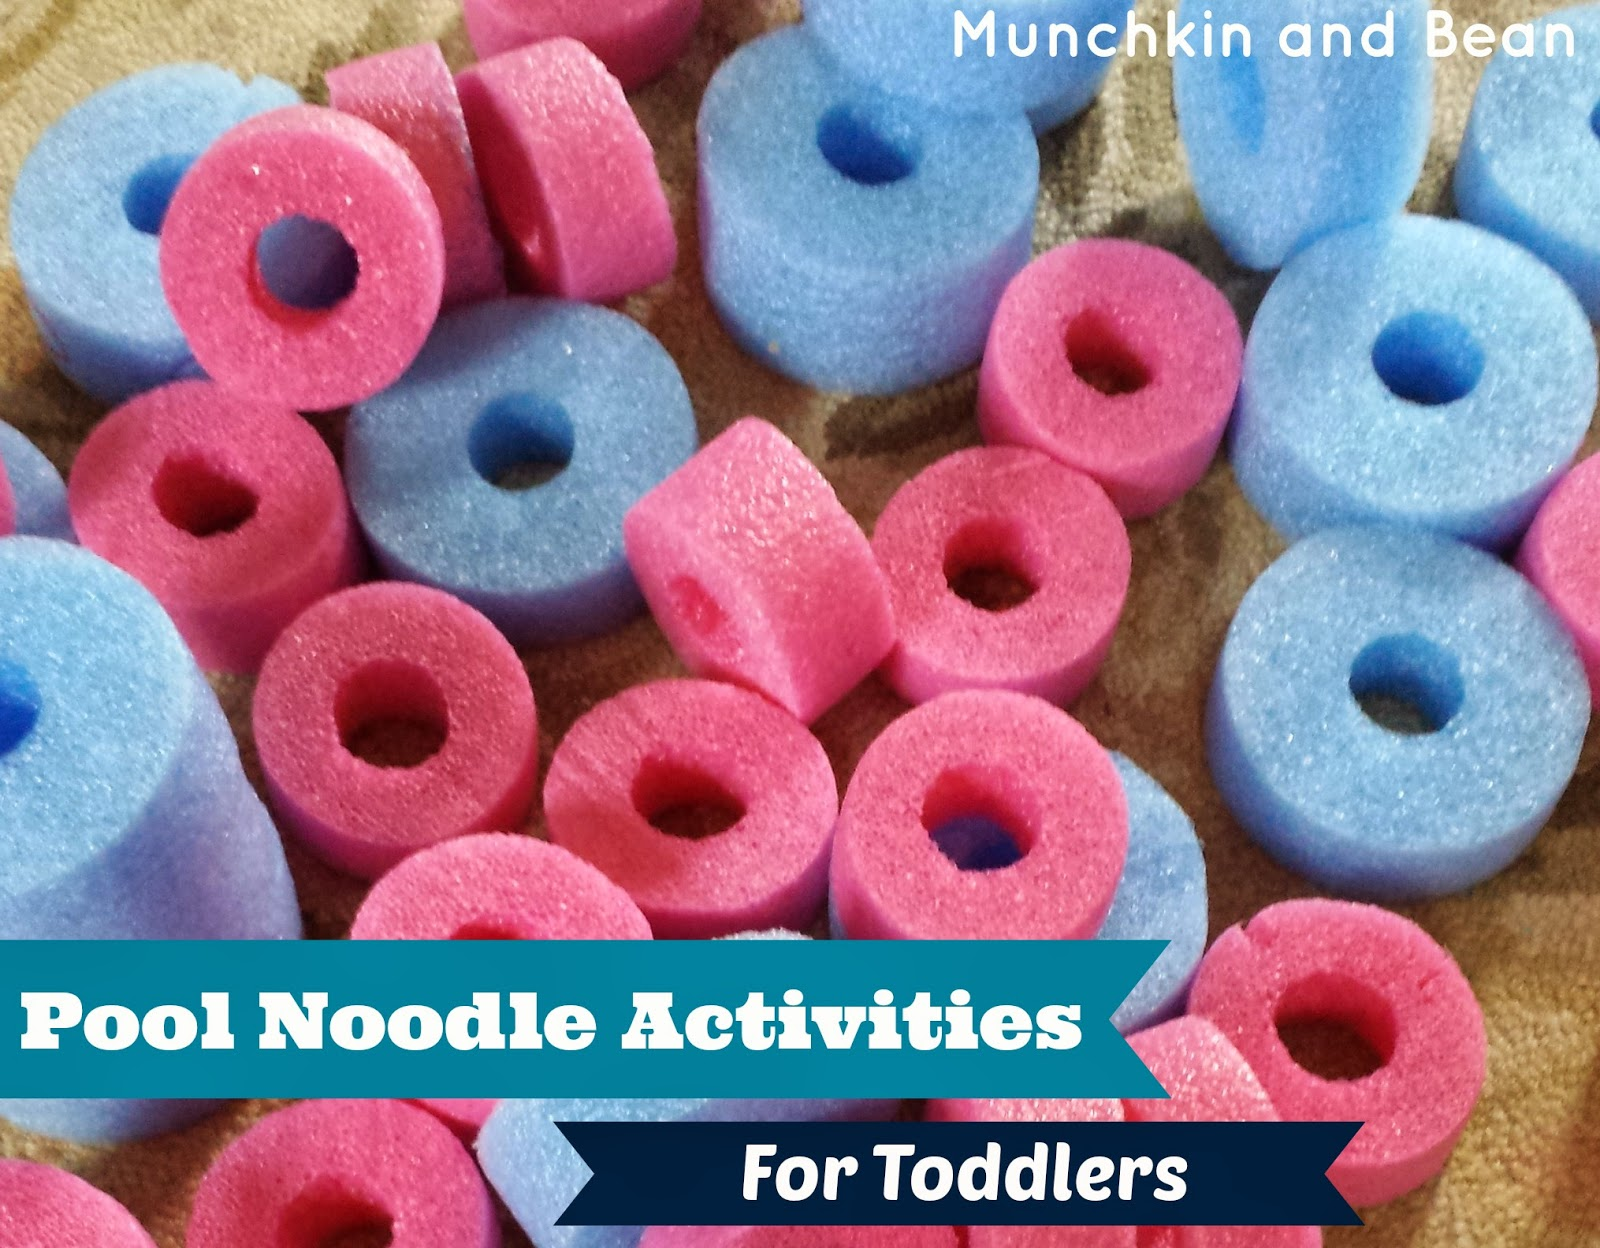 Munchkin and Bean Pool Noodle Activities for Toddlers